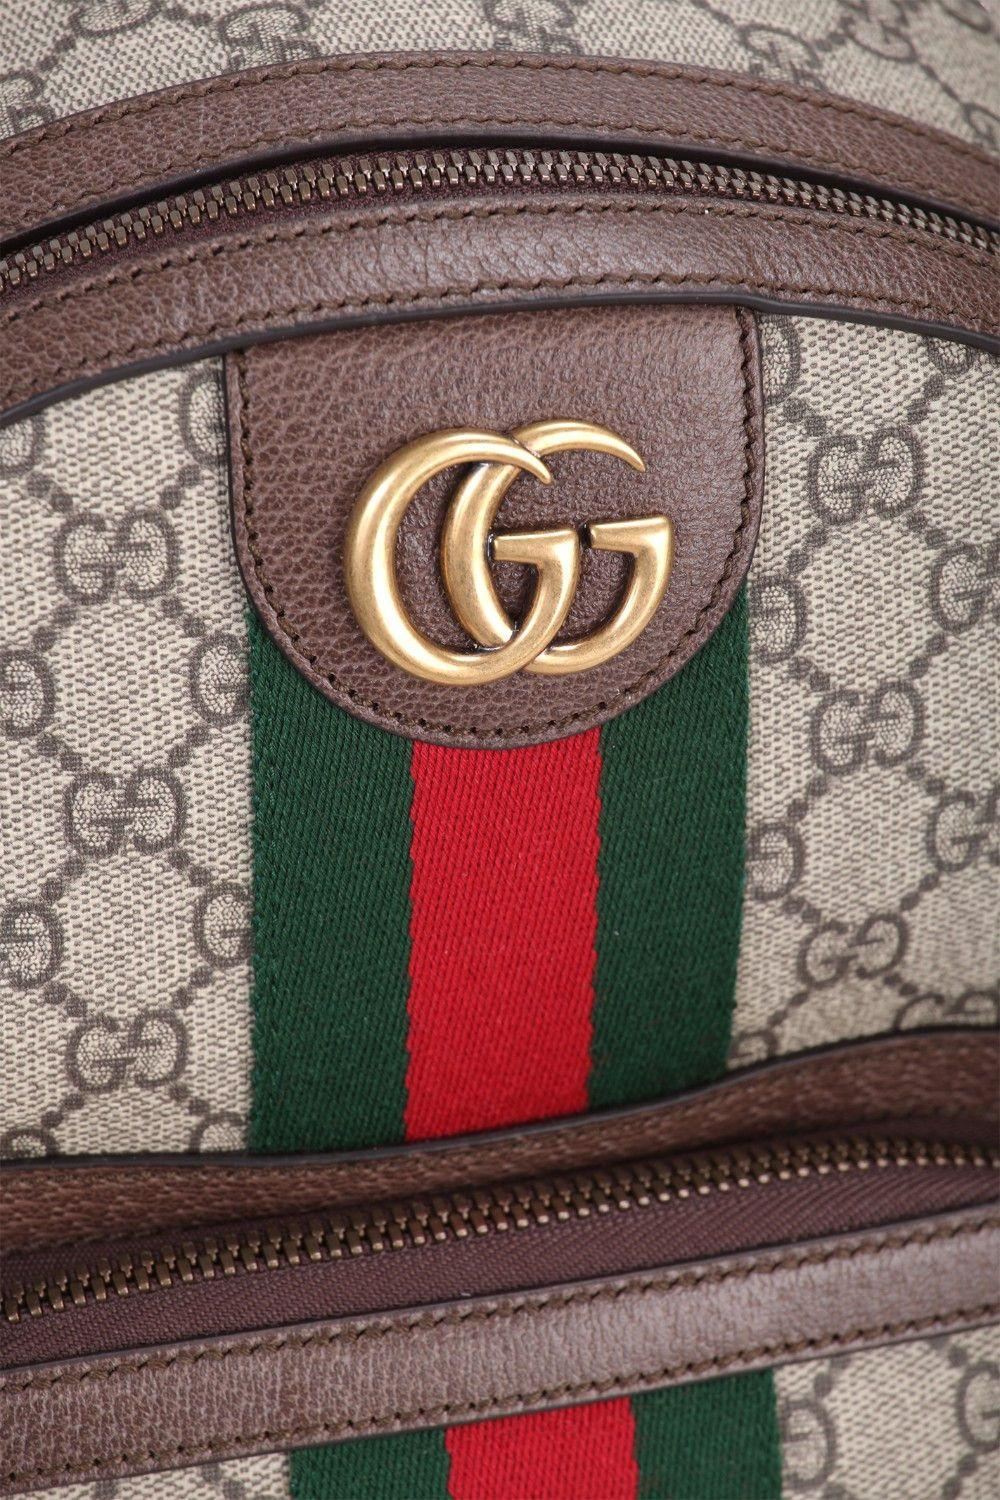 Gucci Leather Backpack In Beige And Ebony Gg Supreme Fabric In